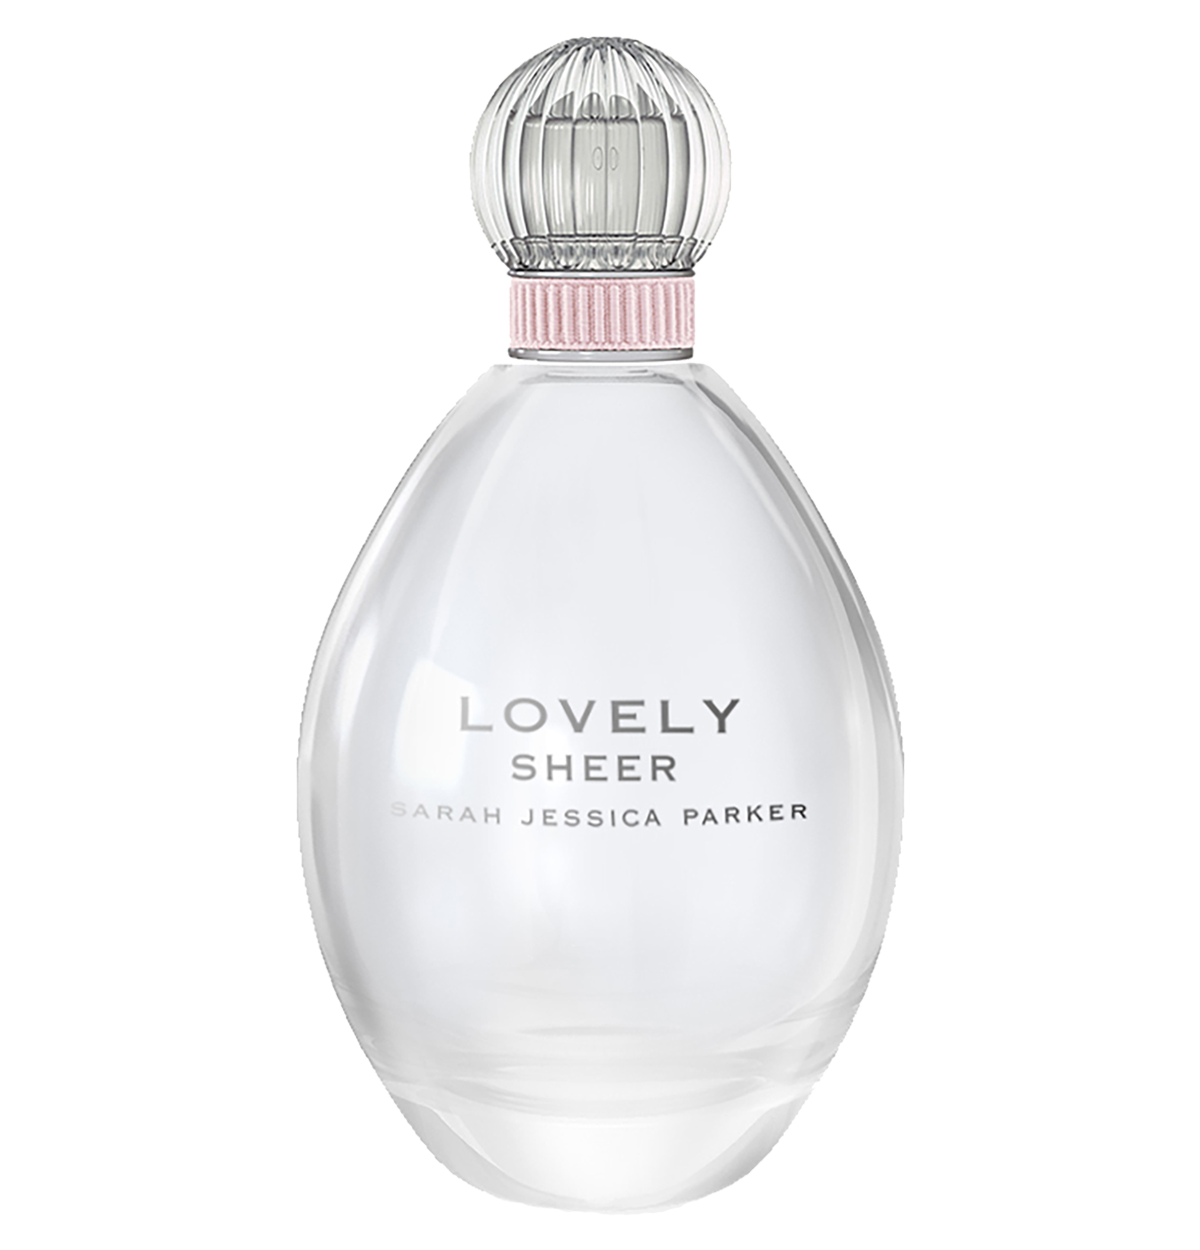 Lovely Sheer Eau de Parfum Spray